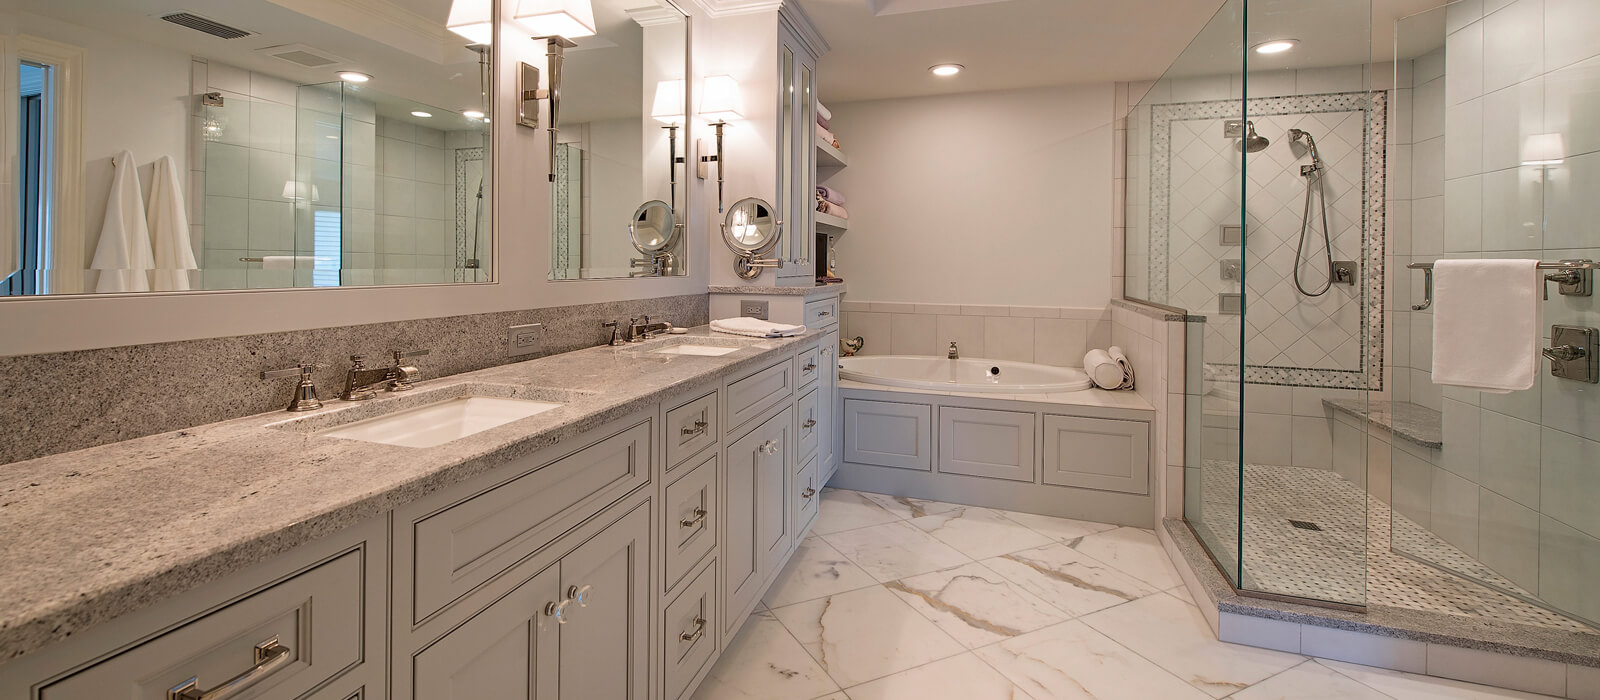 Transitional Bathroom Gallery. Transitional Bathrooms   Allure Cabinetry  amp  Showroom